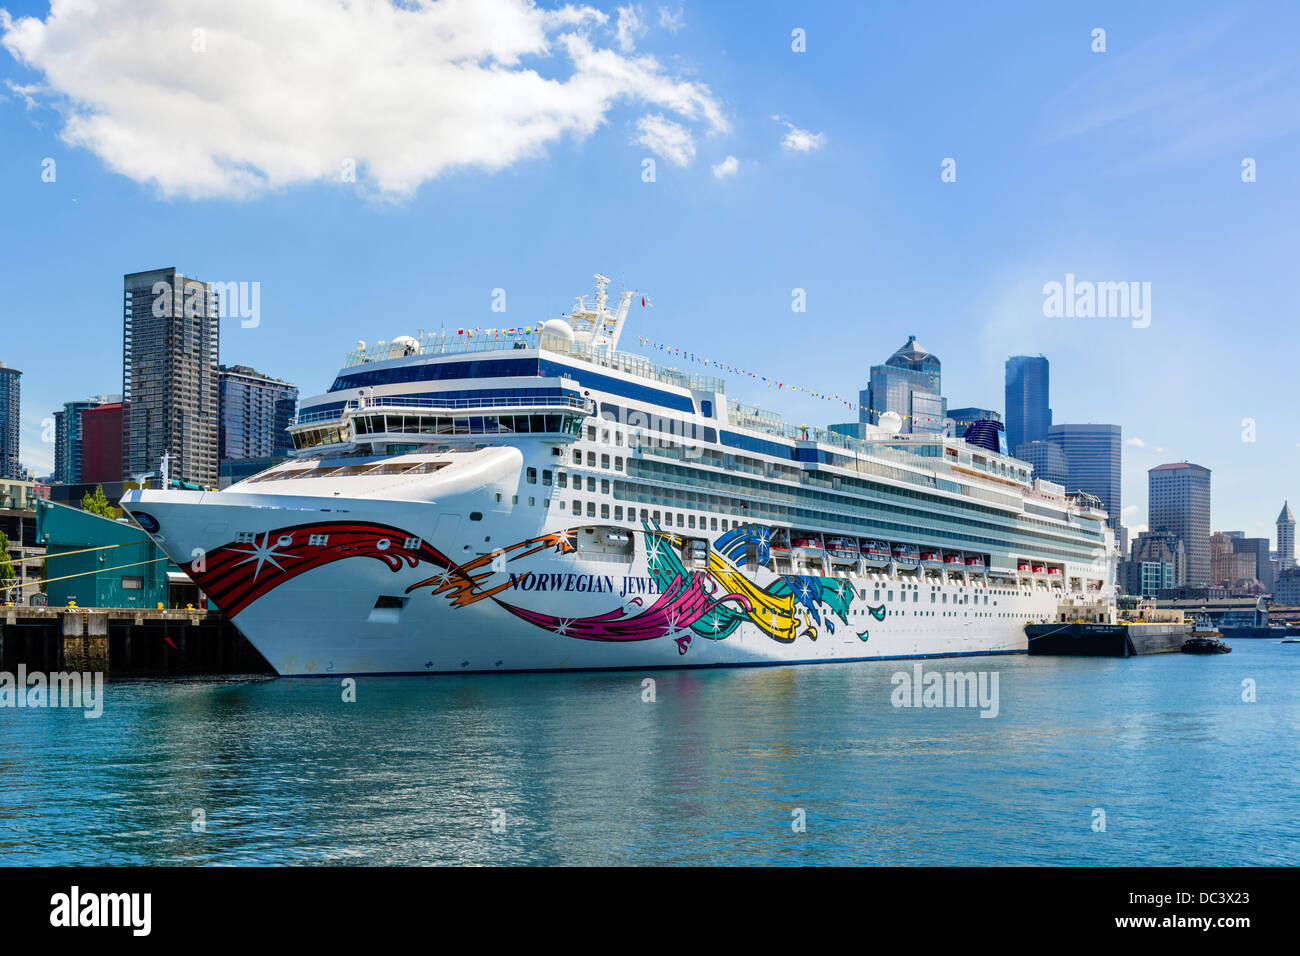 La Norwegian Cruise Lines cruise ship 'Norwegian Jewel' amarré au port de Seattle, Washington, USA Photo Stock